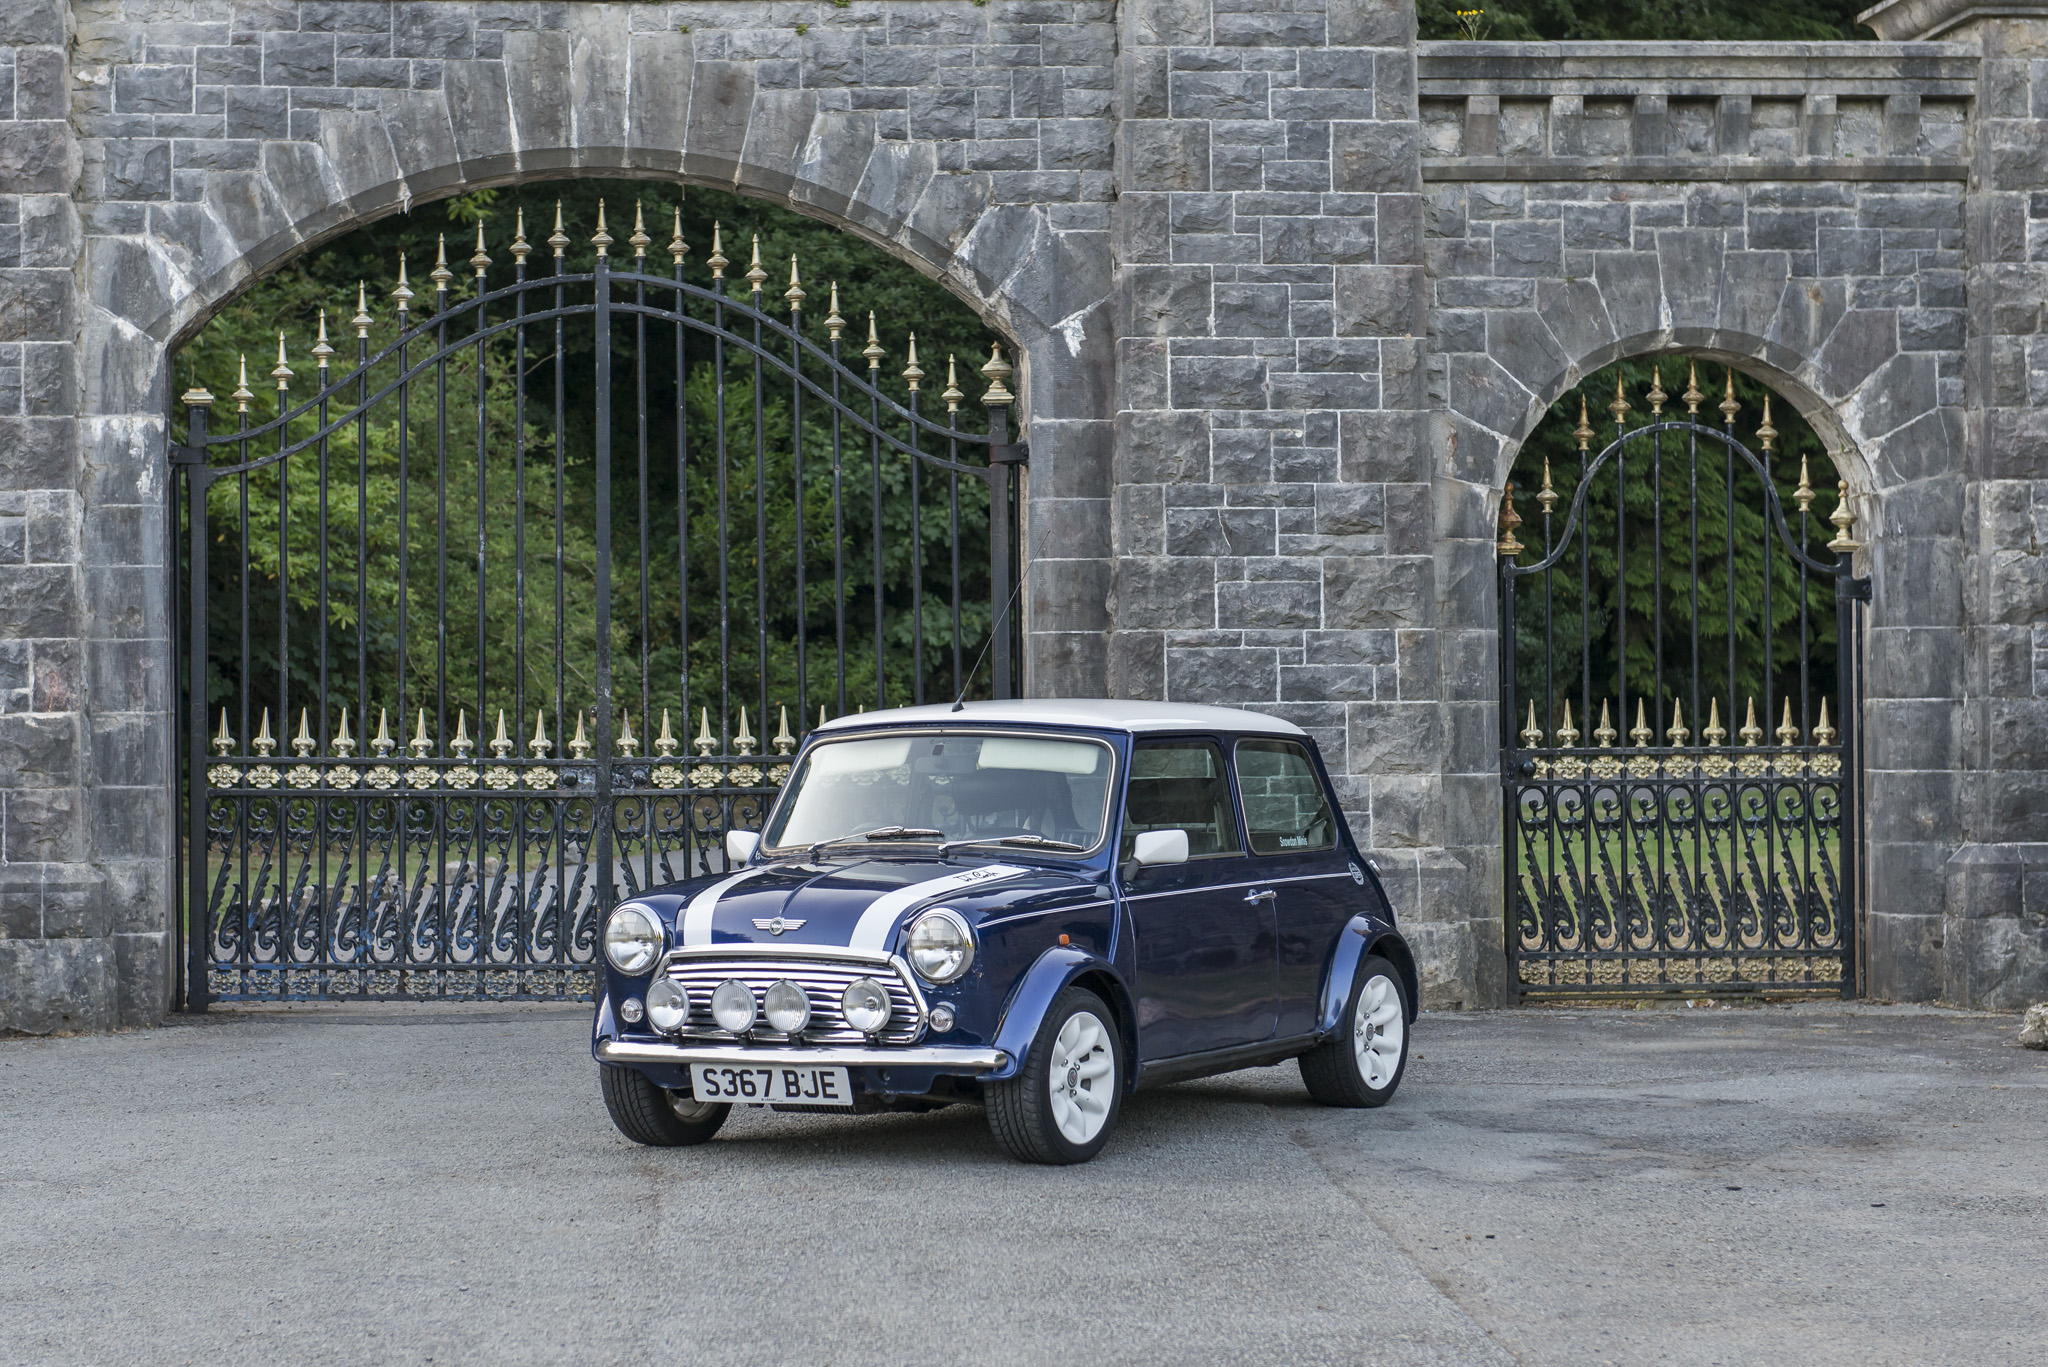 1998 ROVER MINI COOPER  |  OWNER - JUSTIN ZALOT  |  LOCATION - VAYNOL ESTATE